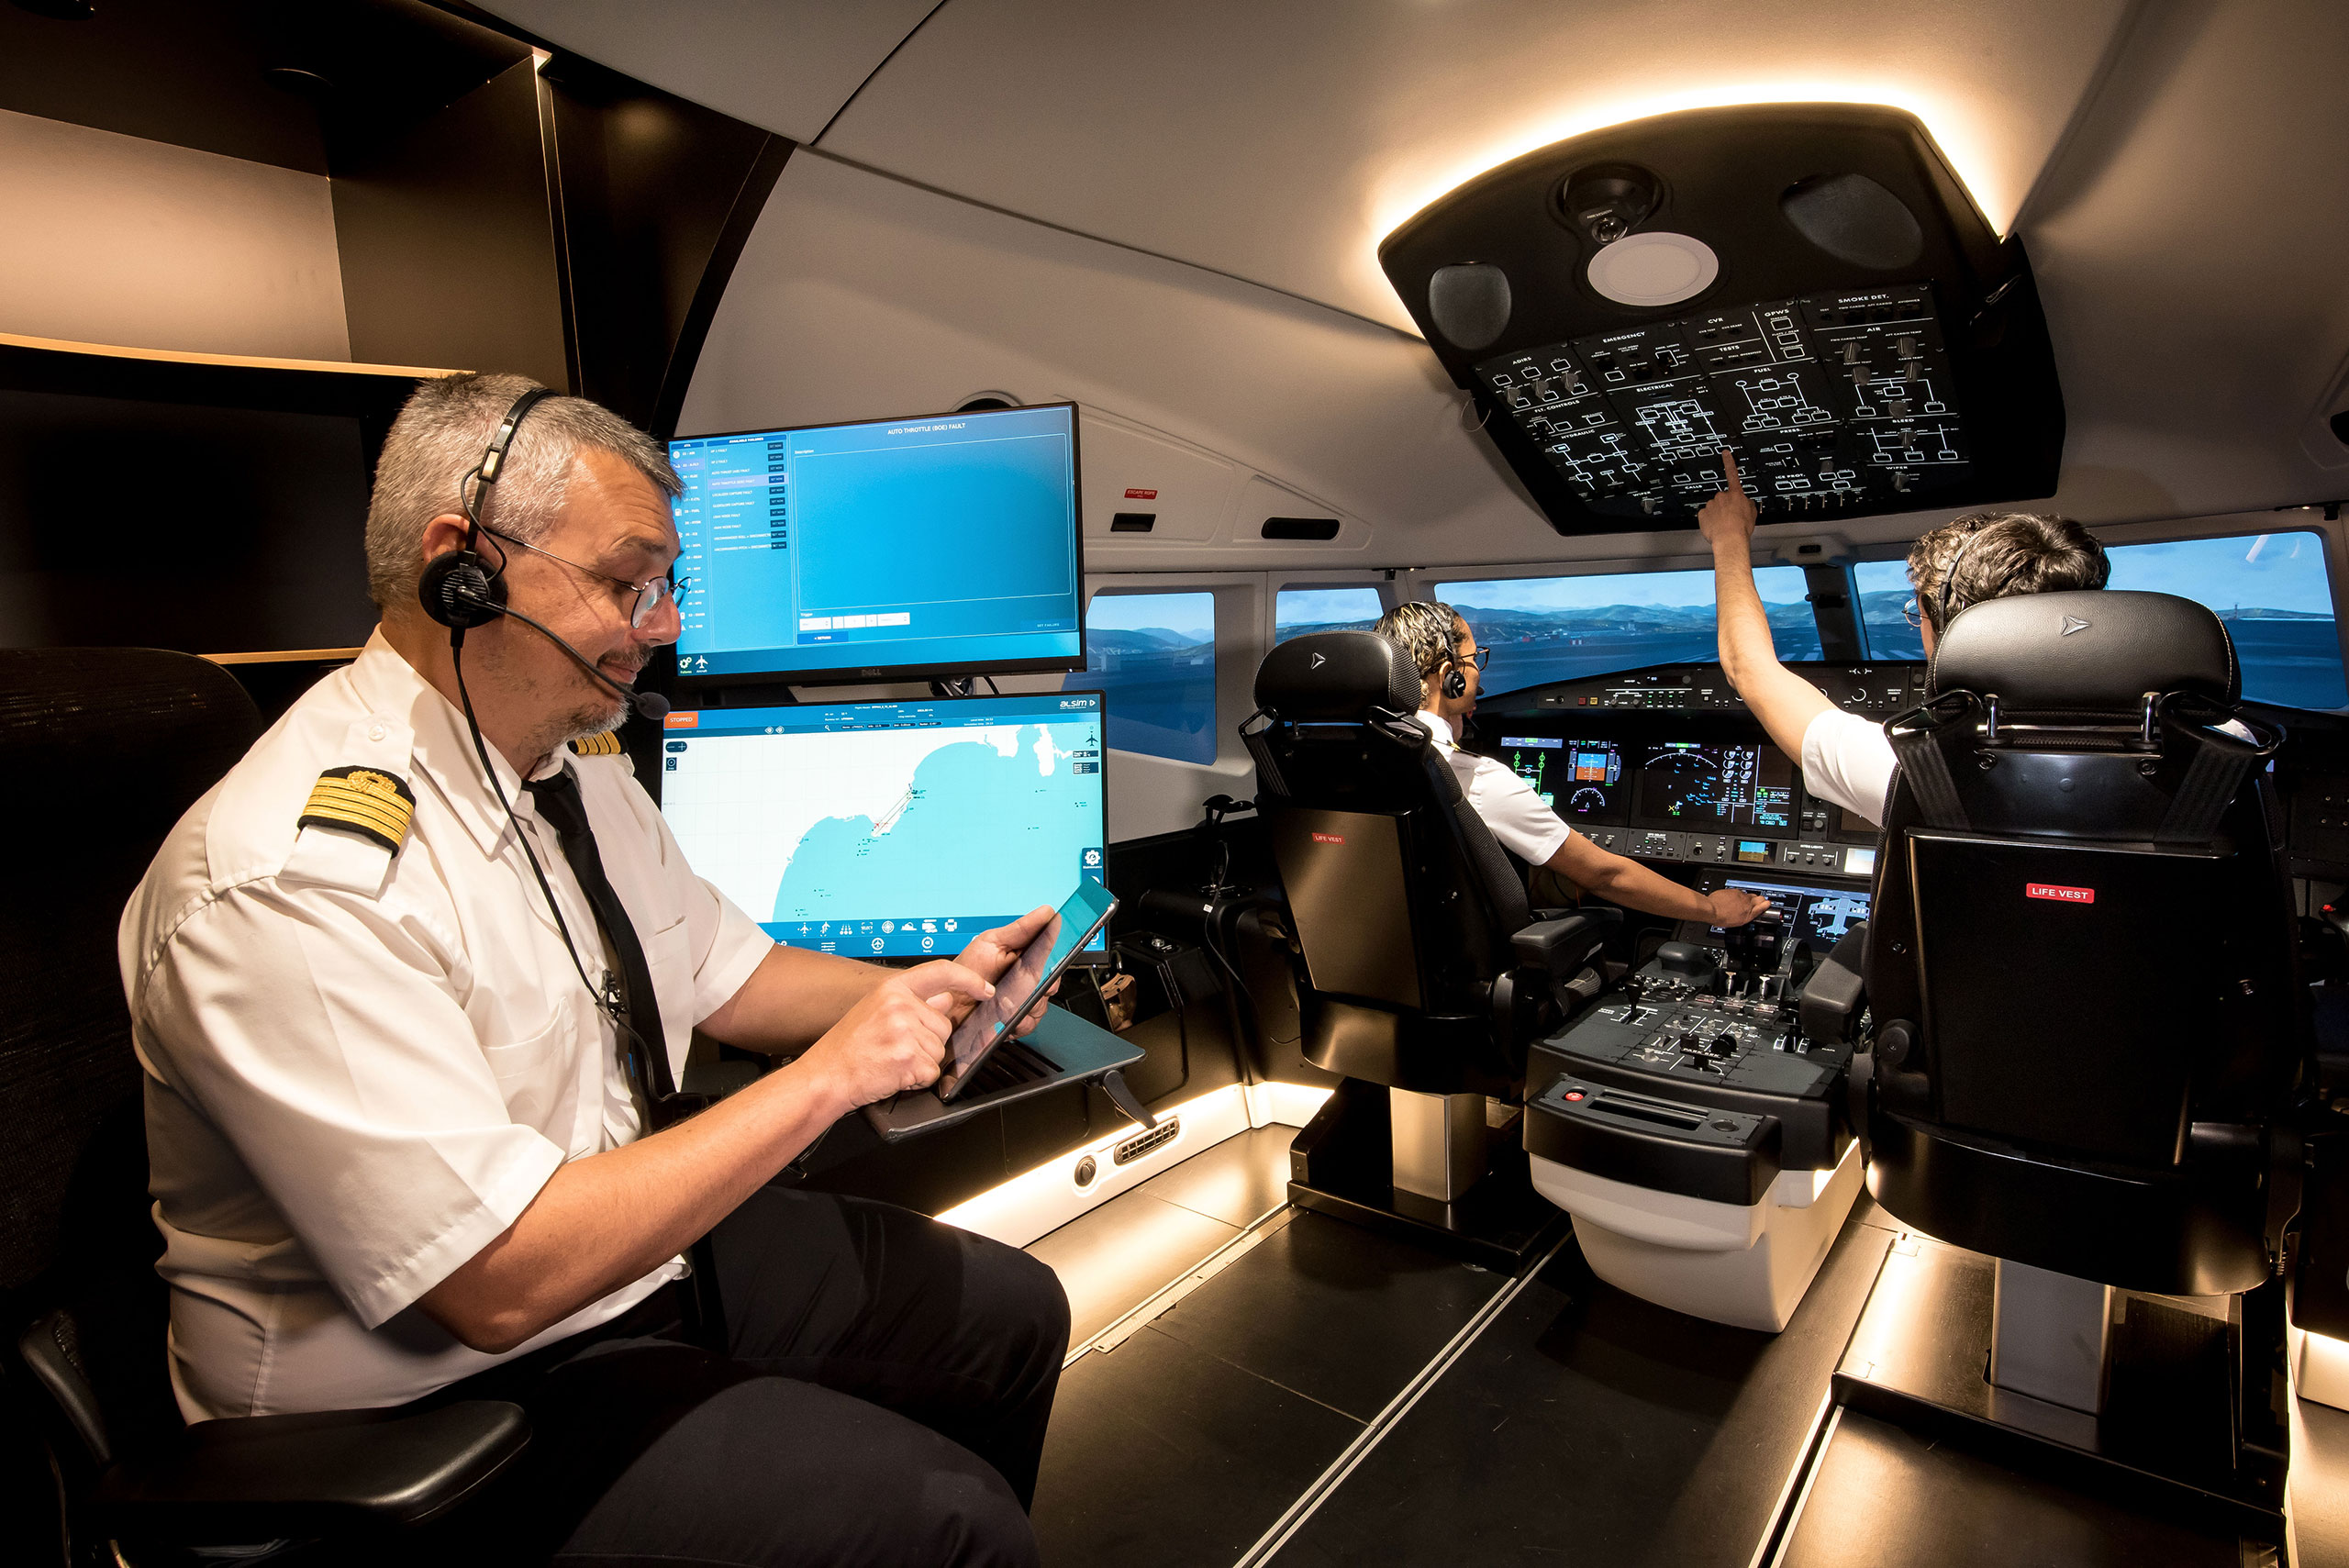 ALSIM and Three DIS win contract for three FNPT II MCC simulators for Airports Authority of India